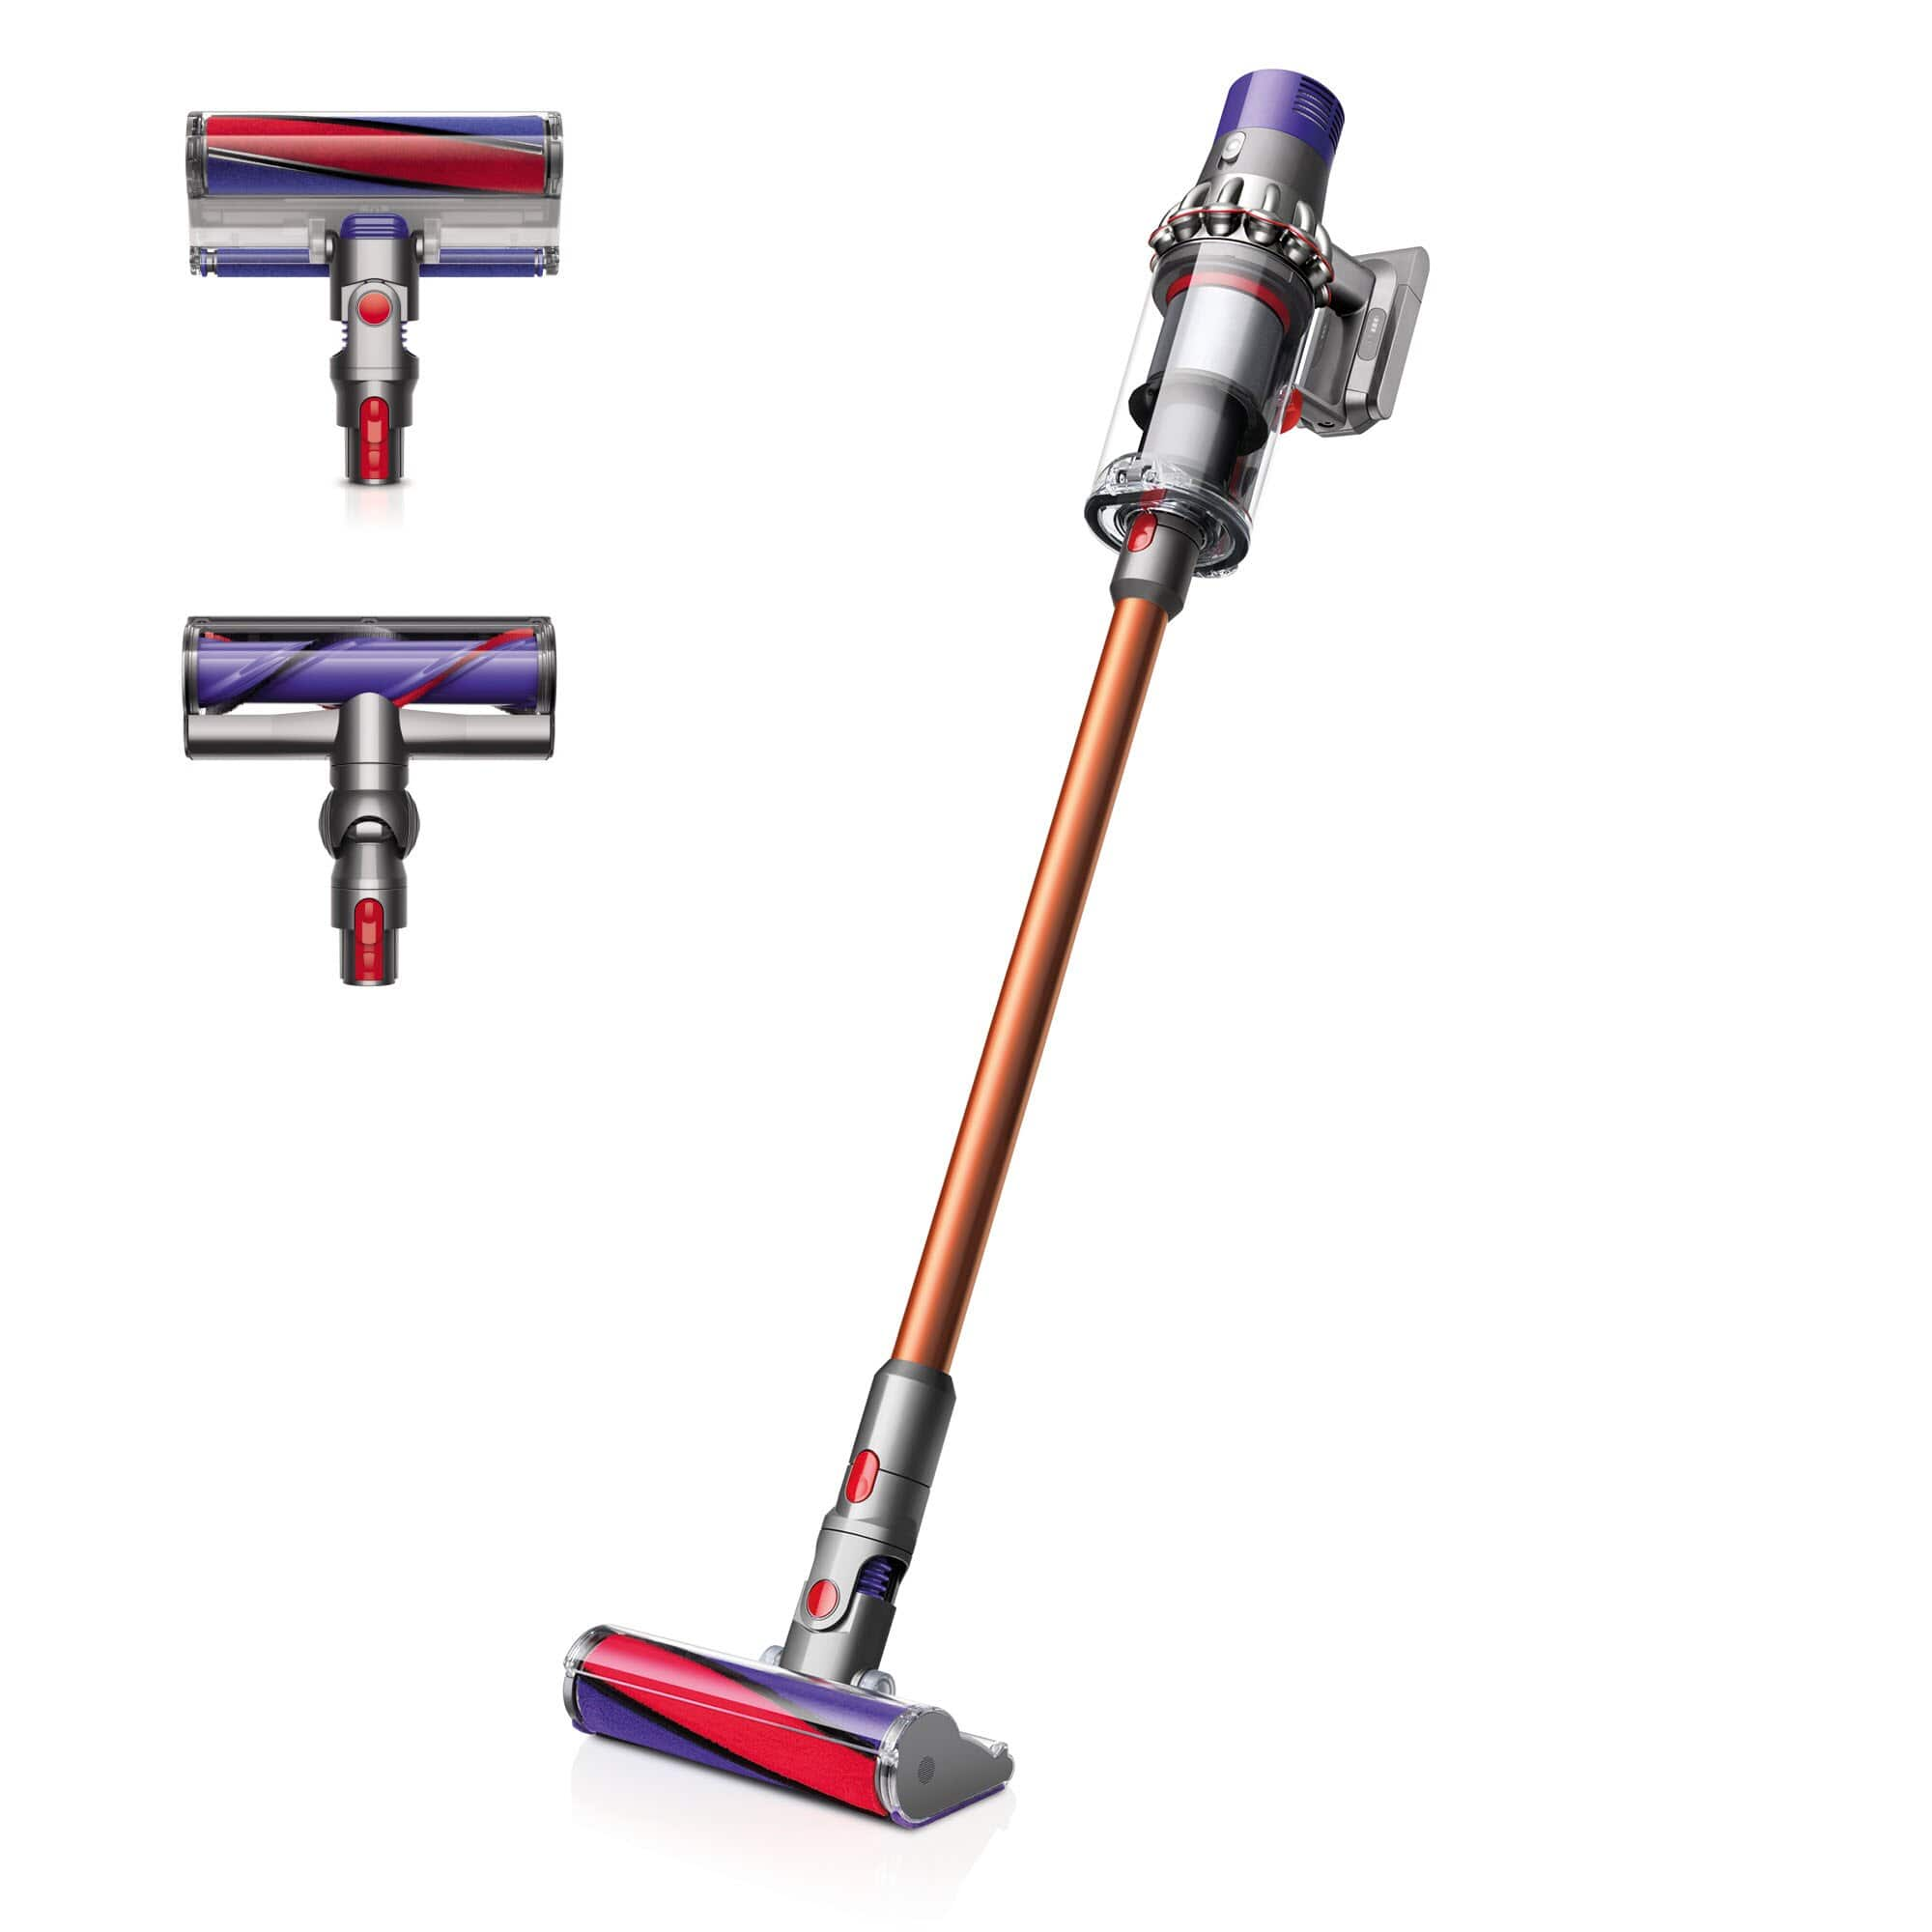 Dyson V10 Absolute Cordless Vacuum Refurbished $280 $279.99